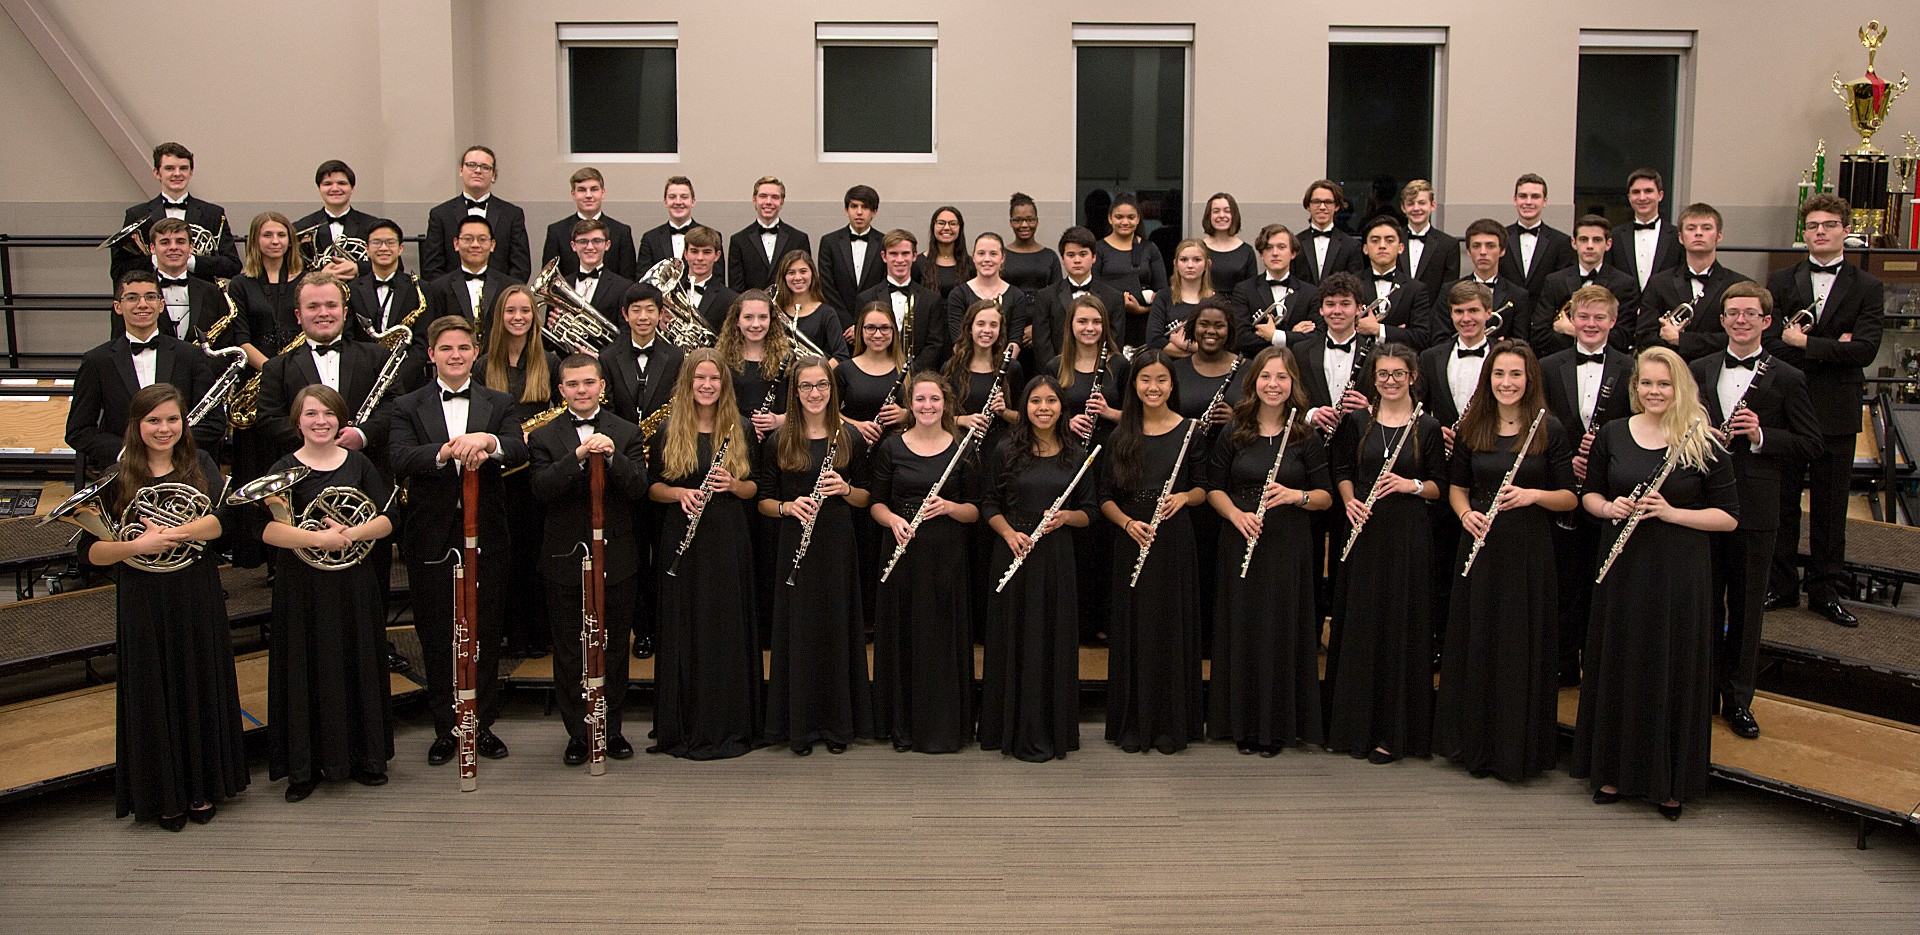 The JHS Wind Symphony is one of only 16 bands from around the nation to be selected as a featured band at the Music For All Festival.